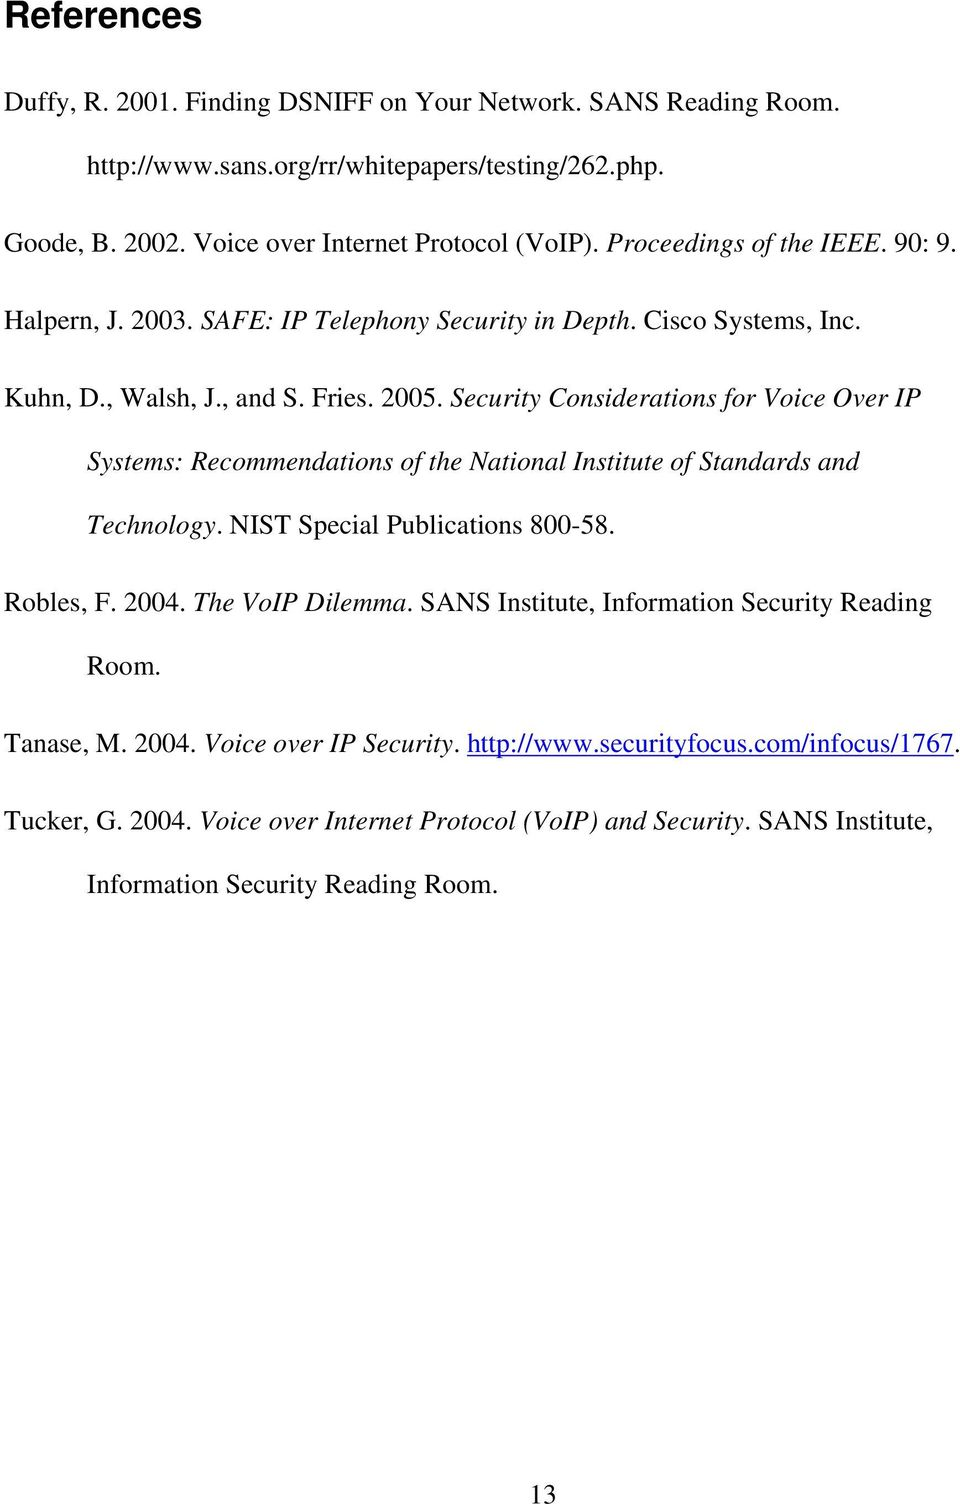 Security Considerations for Voice Over IP Systems: Recommendations of the National Institute of Standards and Technology. NIST Special Publications 800-58. Robles, F. 2004. The VoIP Dilemma.